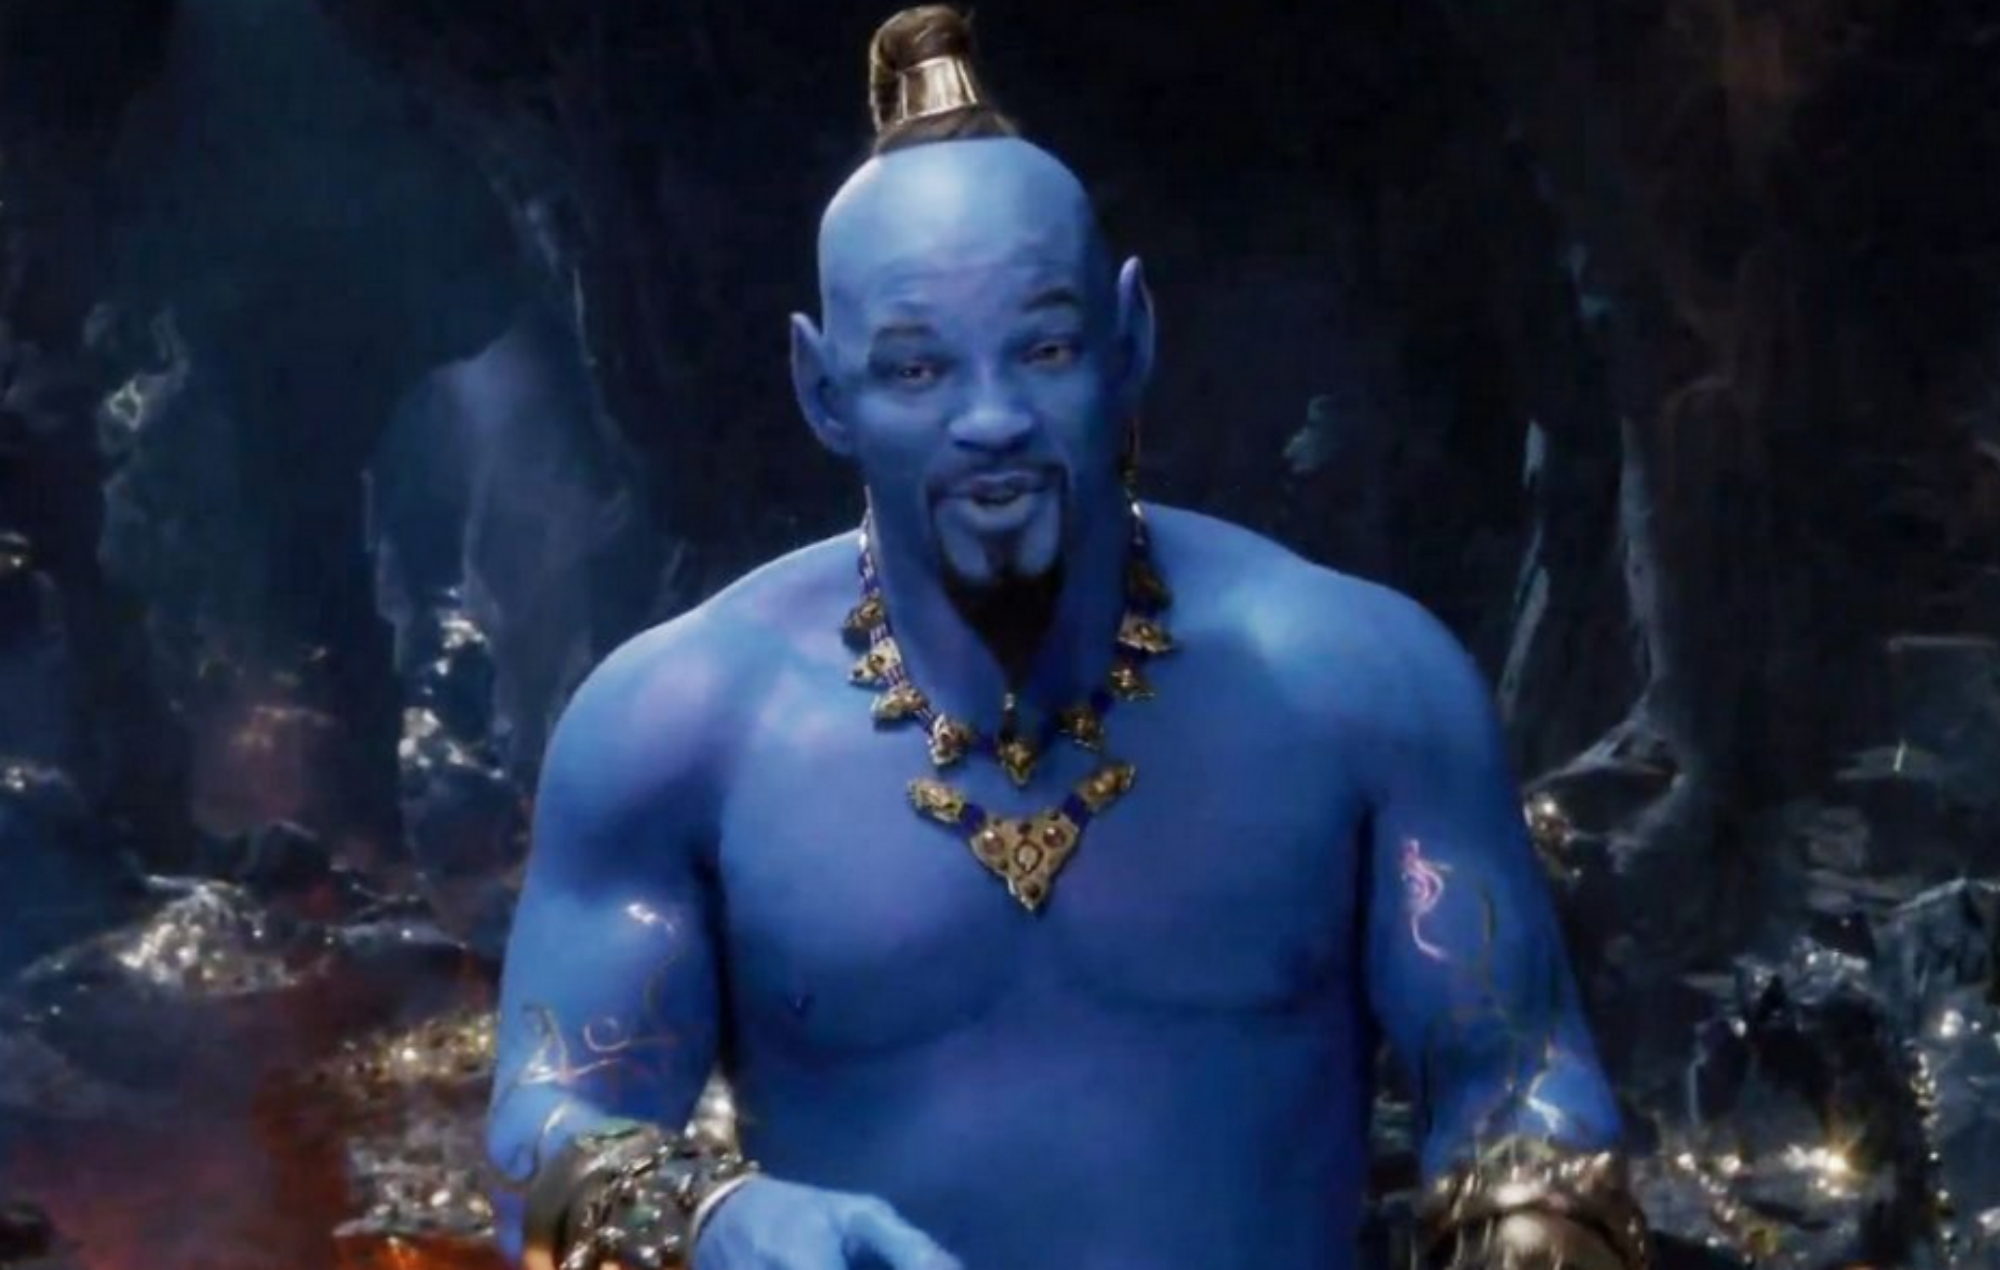 Watch Will Smith Debut As The Genie In New Aladdin Trailer